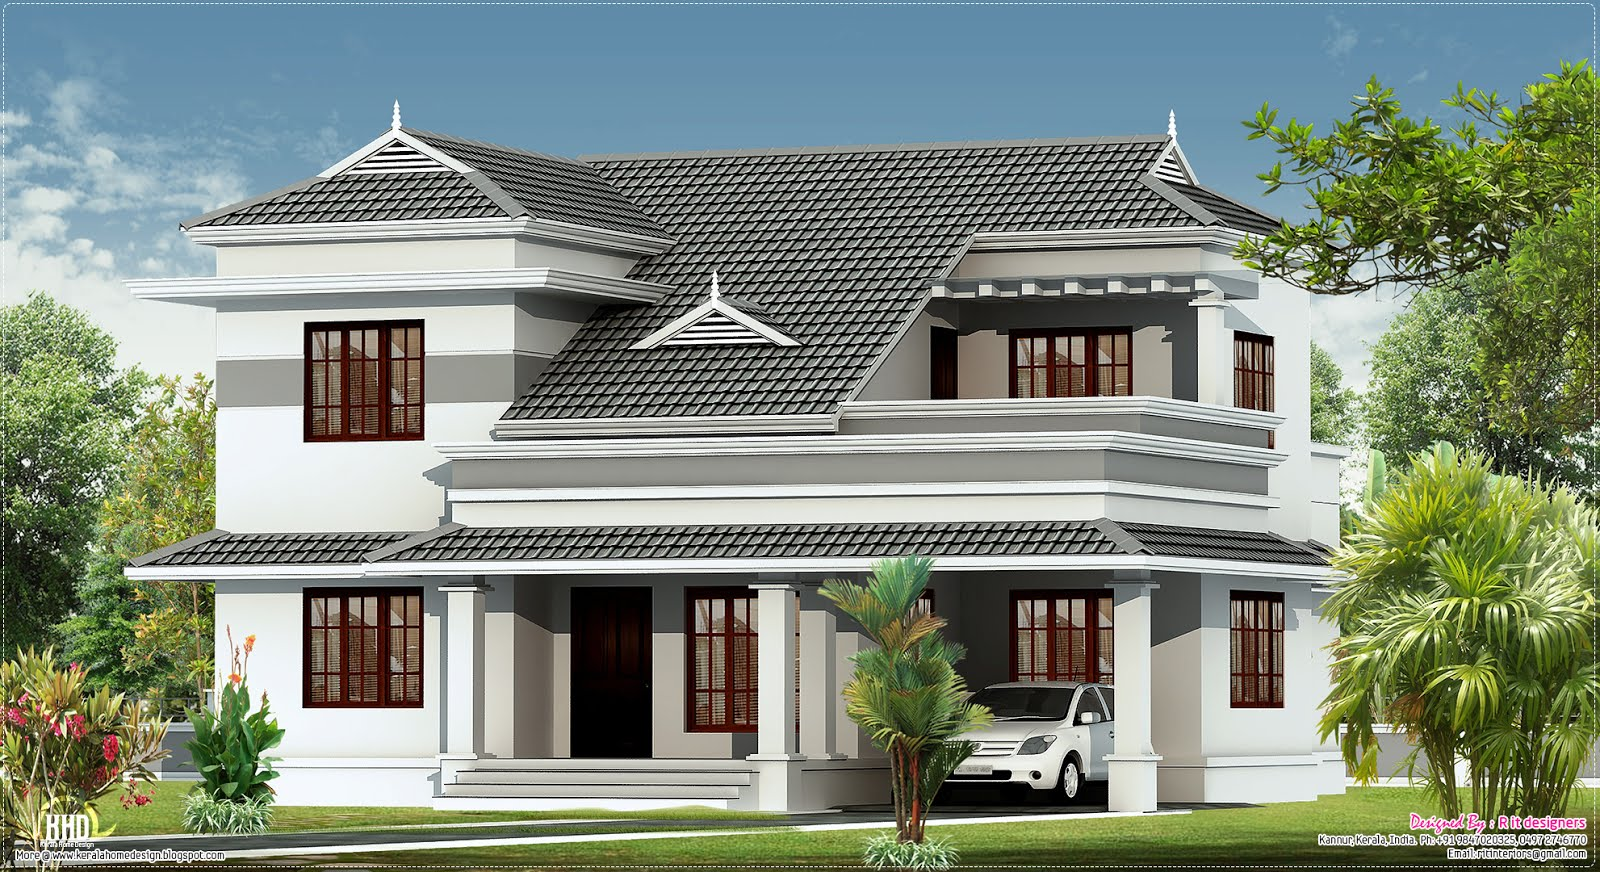 New villa design in 2250 kerala home design and for Villa style homes